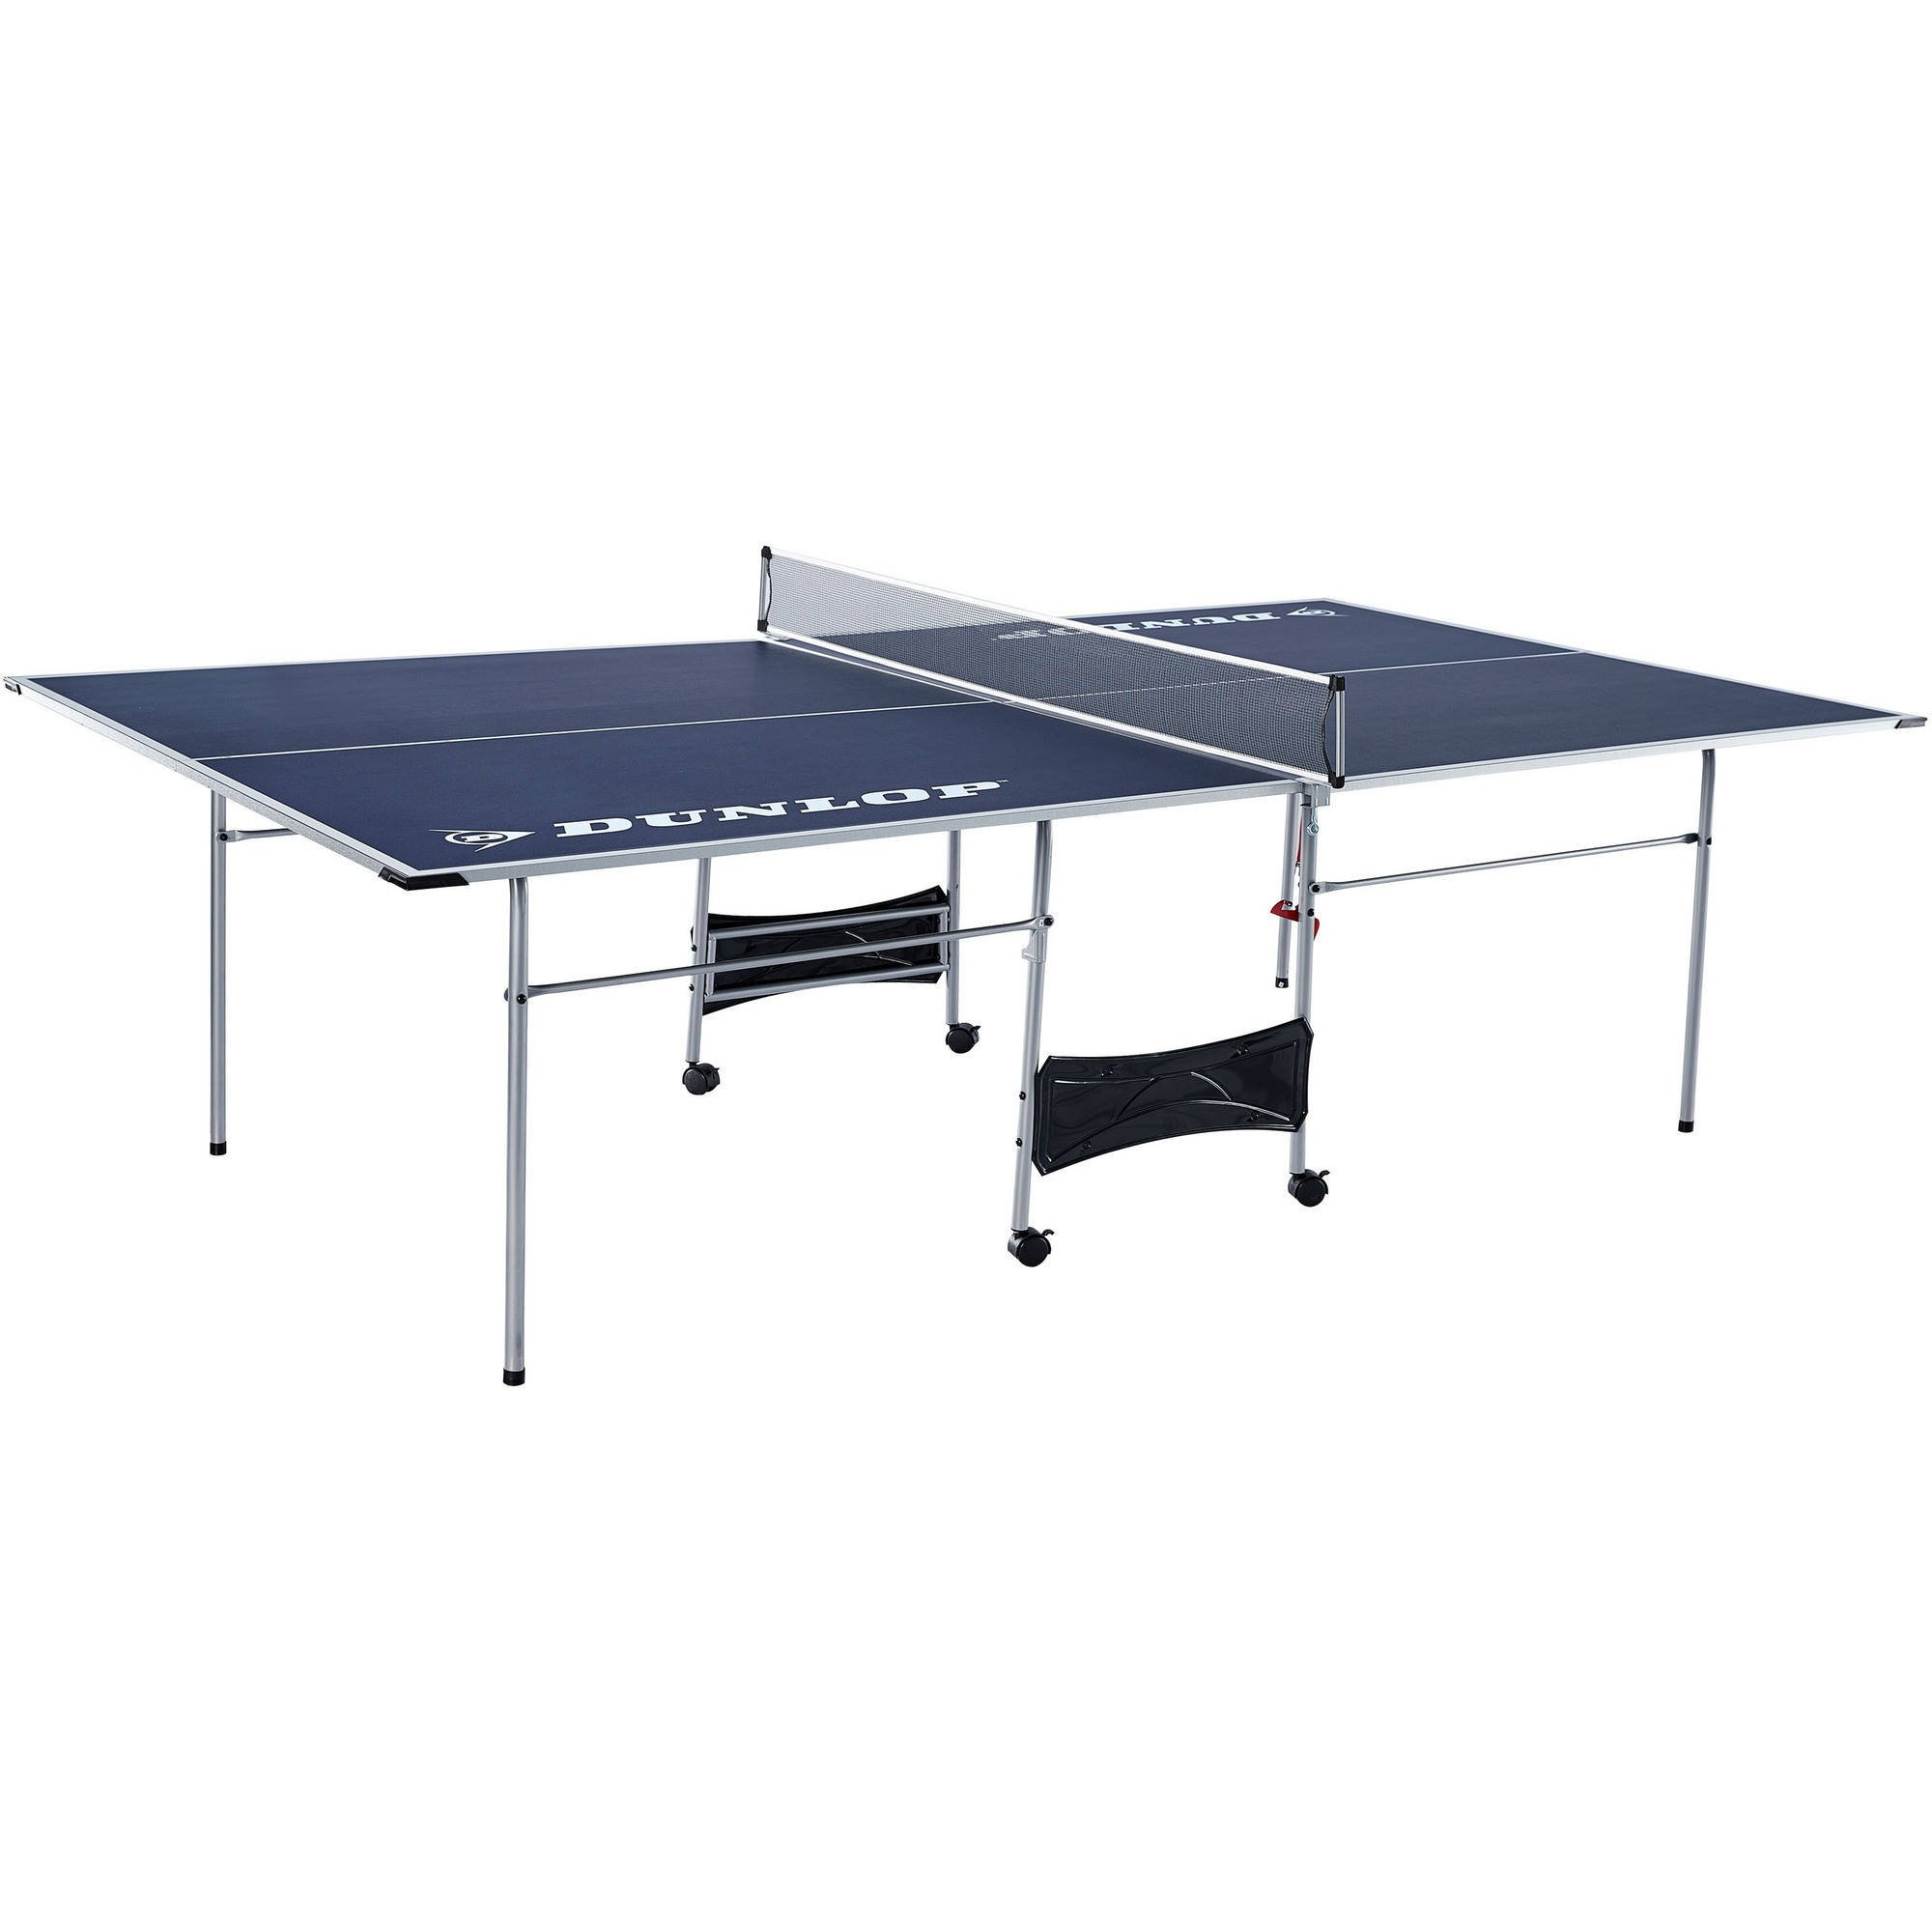 Dunlop Official Size Table 4 Piece Foldable Tennis Table